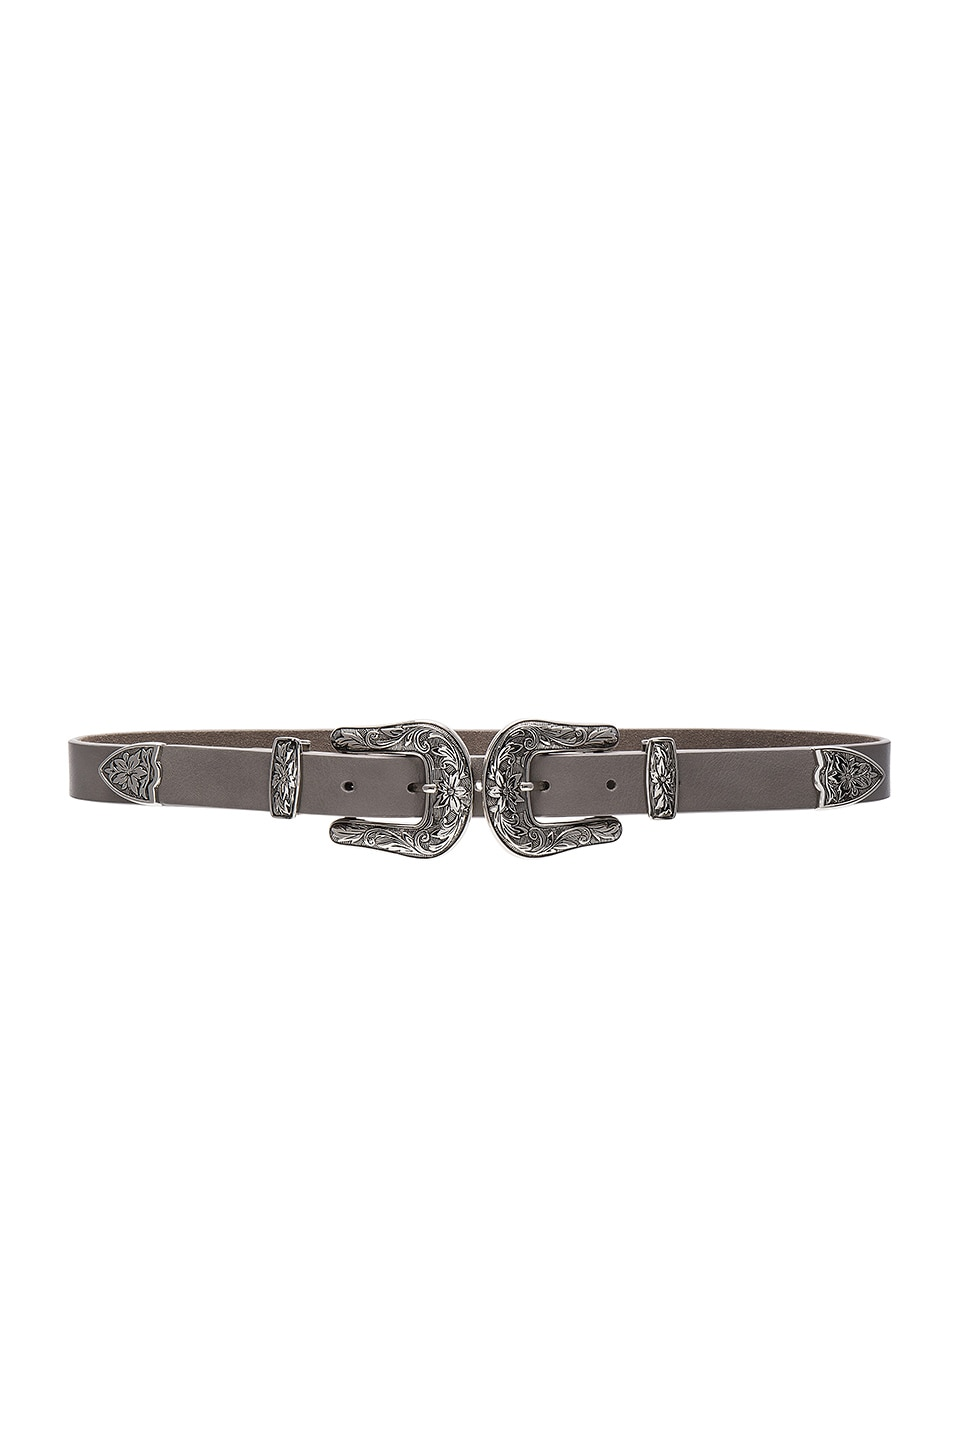 B-Low the Belt Baby Bri Bri Hip Belt in Slate & Silver